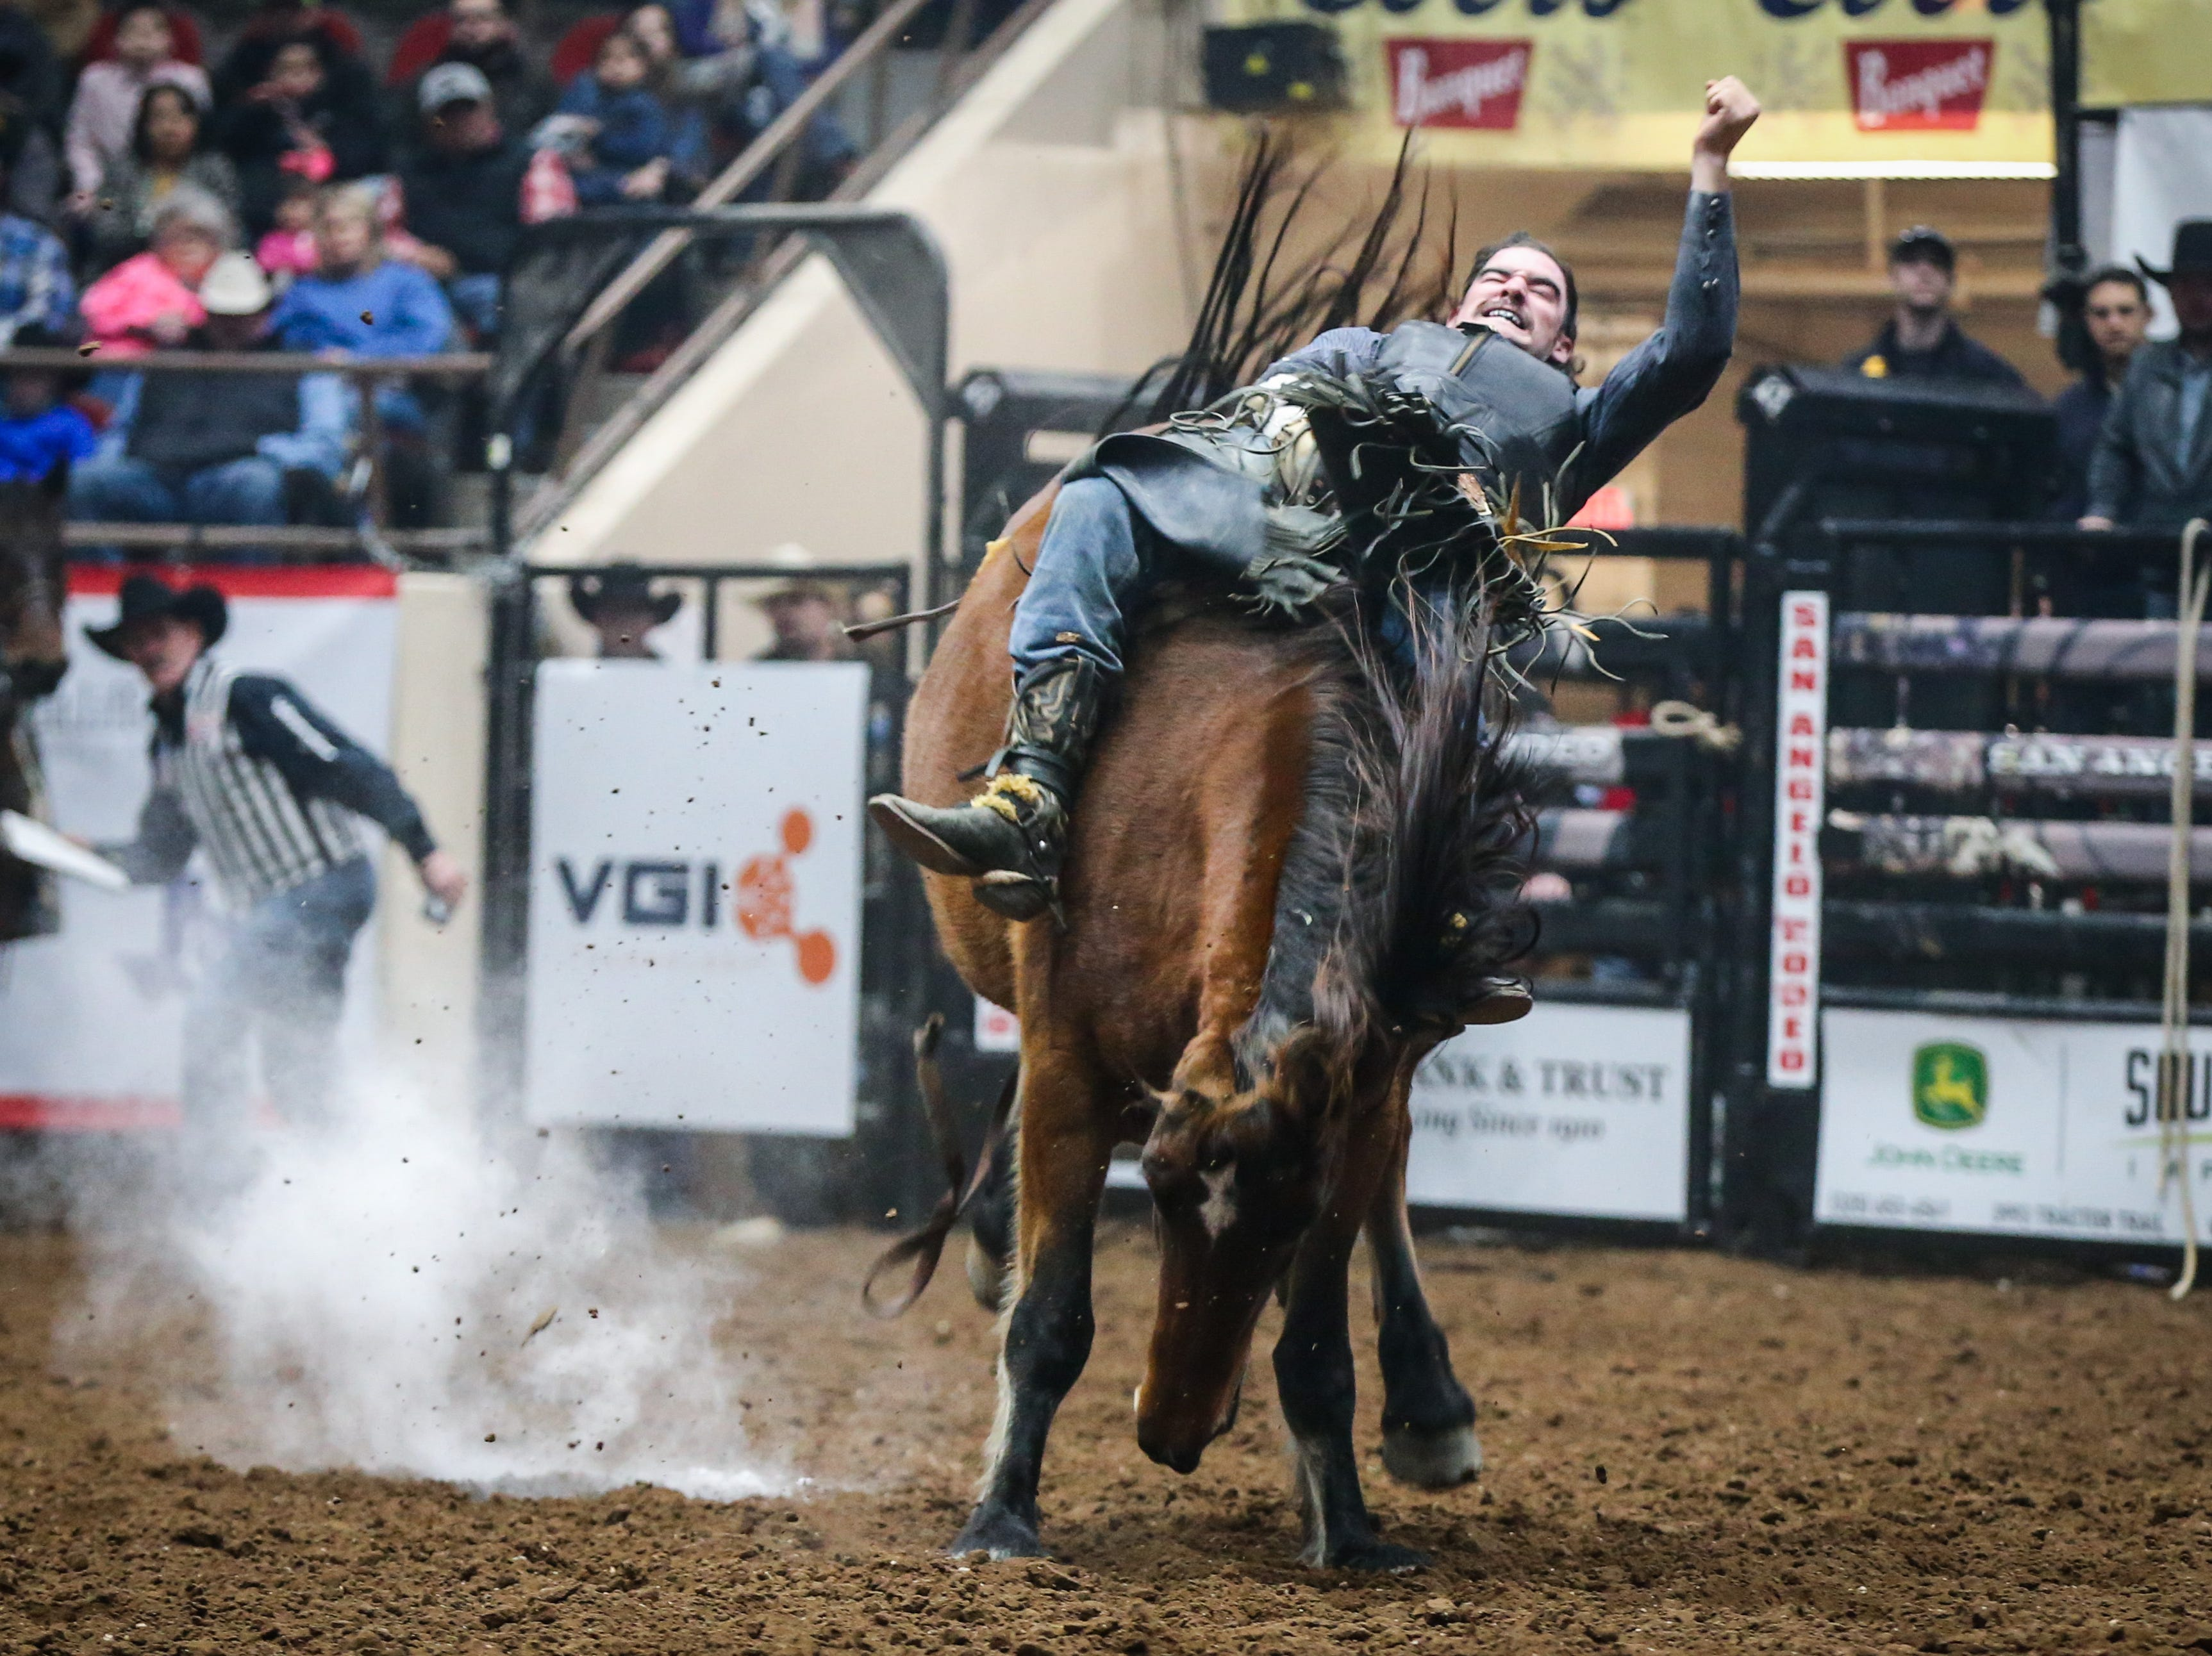 Hunter Carter rides bareback on Night Star during the San Angelo Stock Show & Rodeo matinee show Saturday, Feb. 9, 2019, at Foster Communications Coliseum.